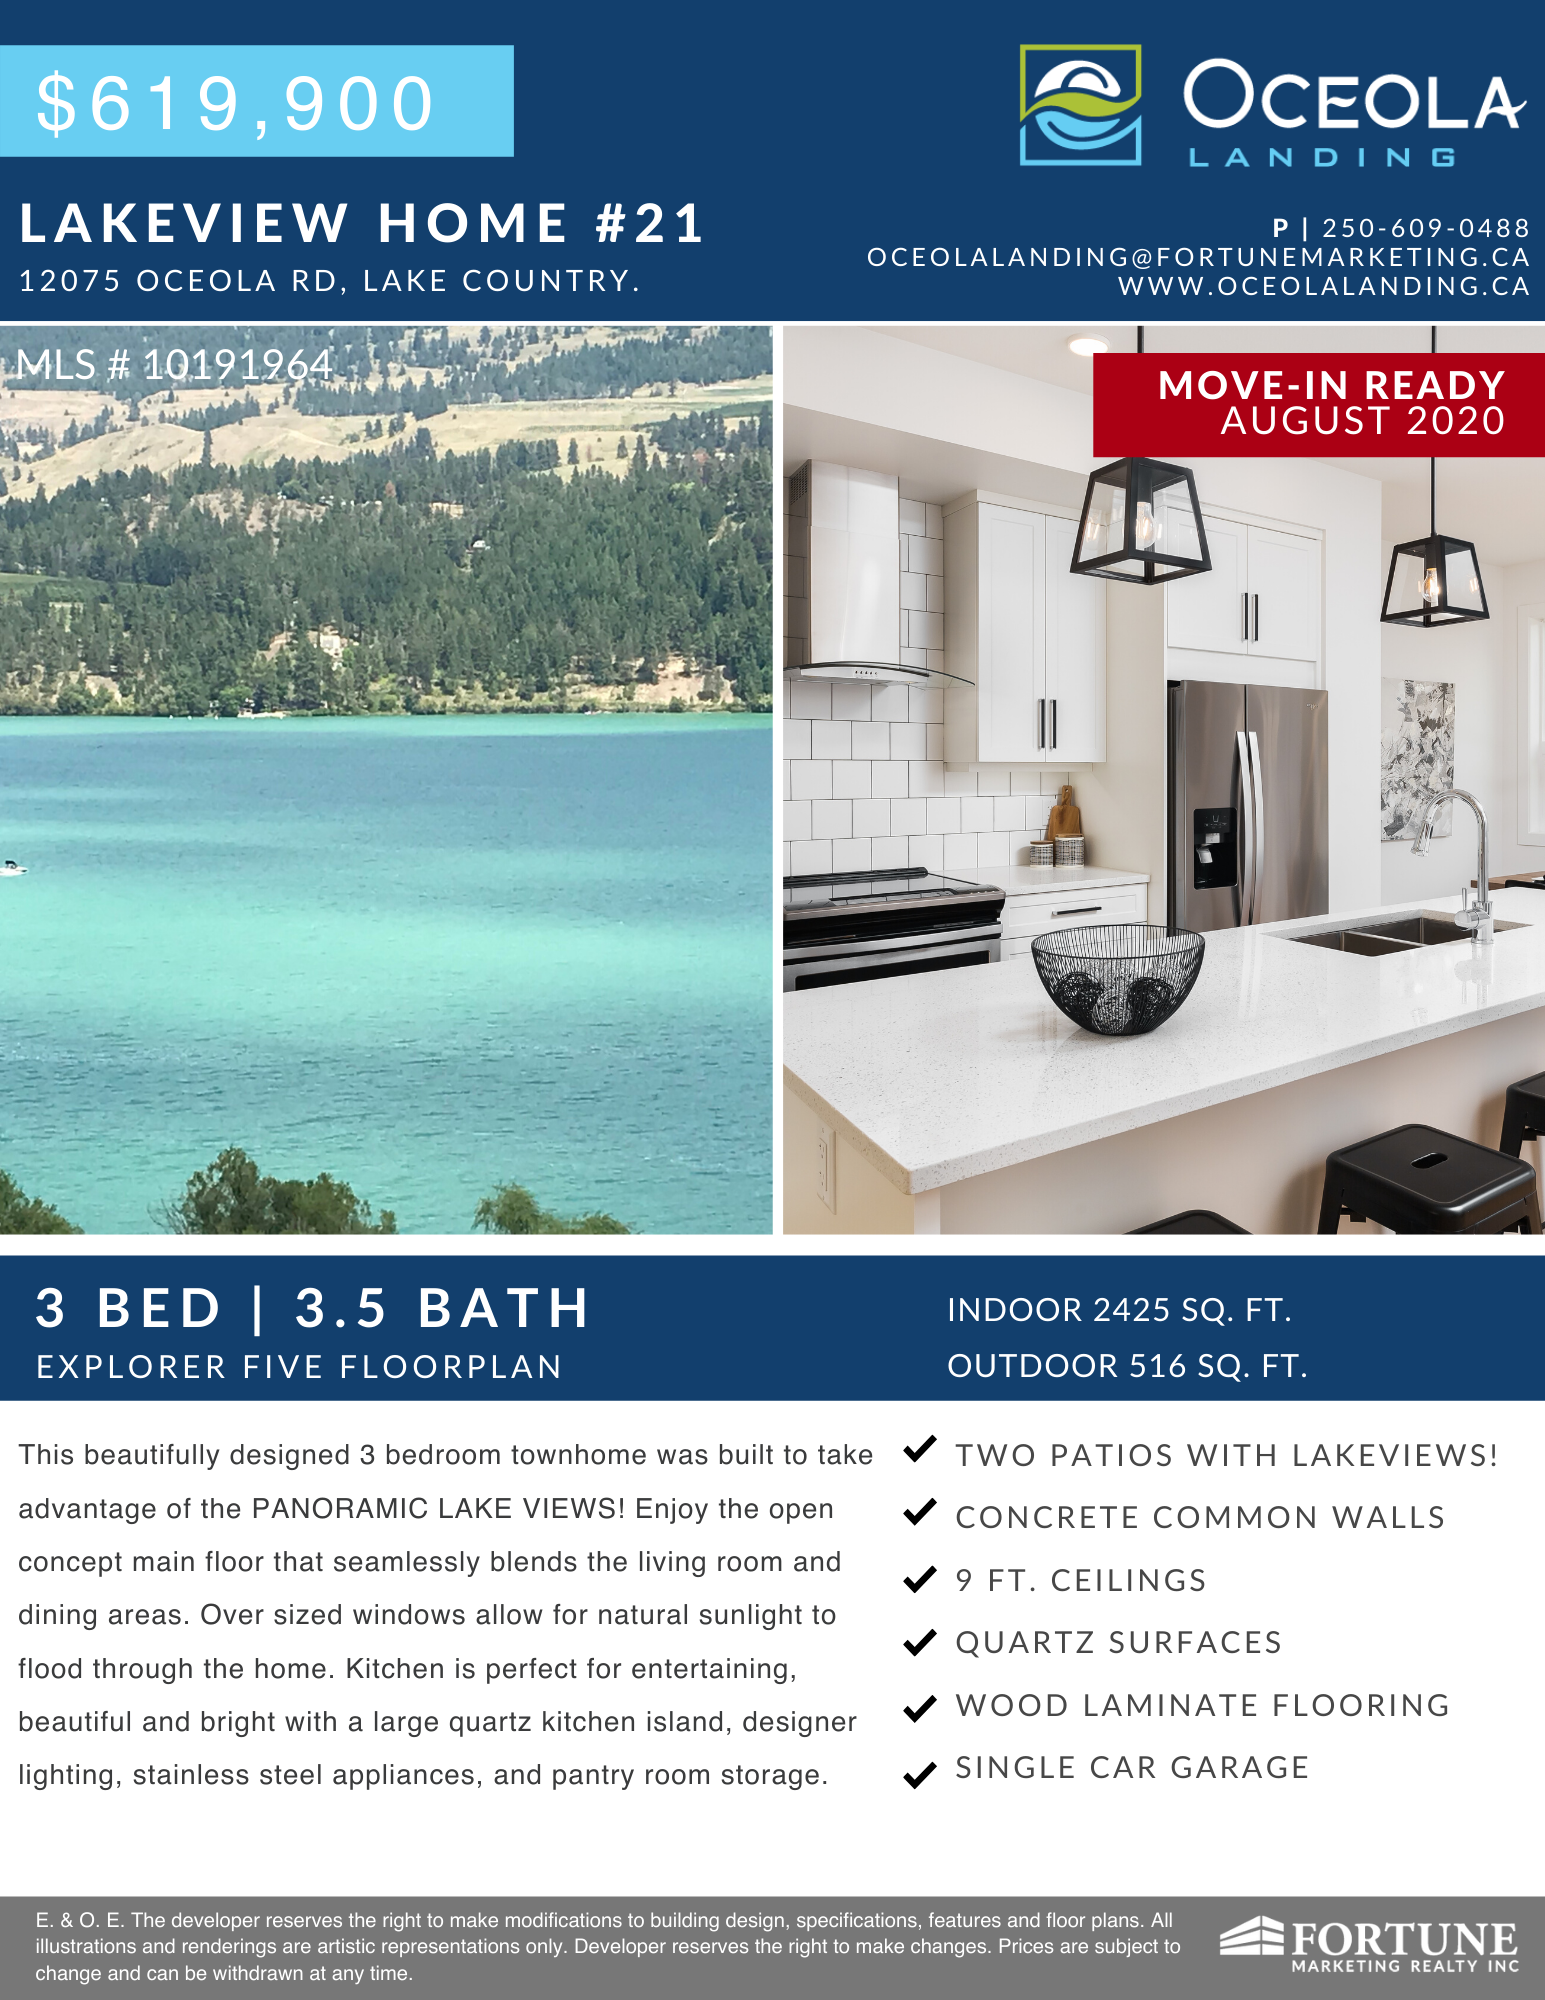 Now Selling Lakeview 3 Bedroom Townhomes in Lake Country, BC.